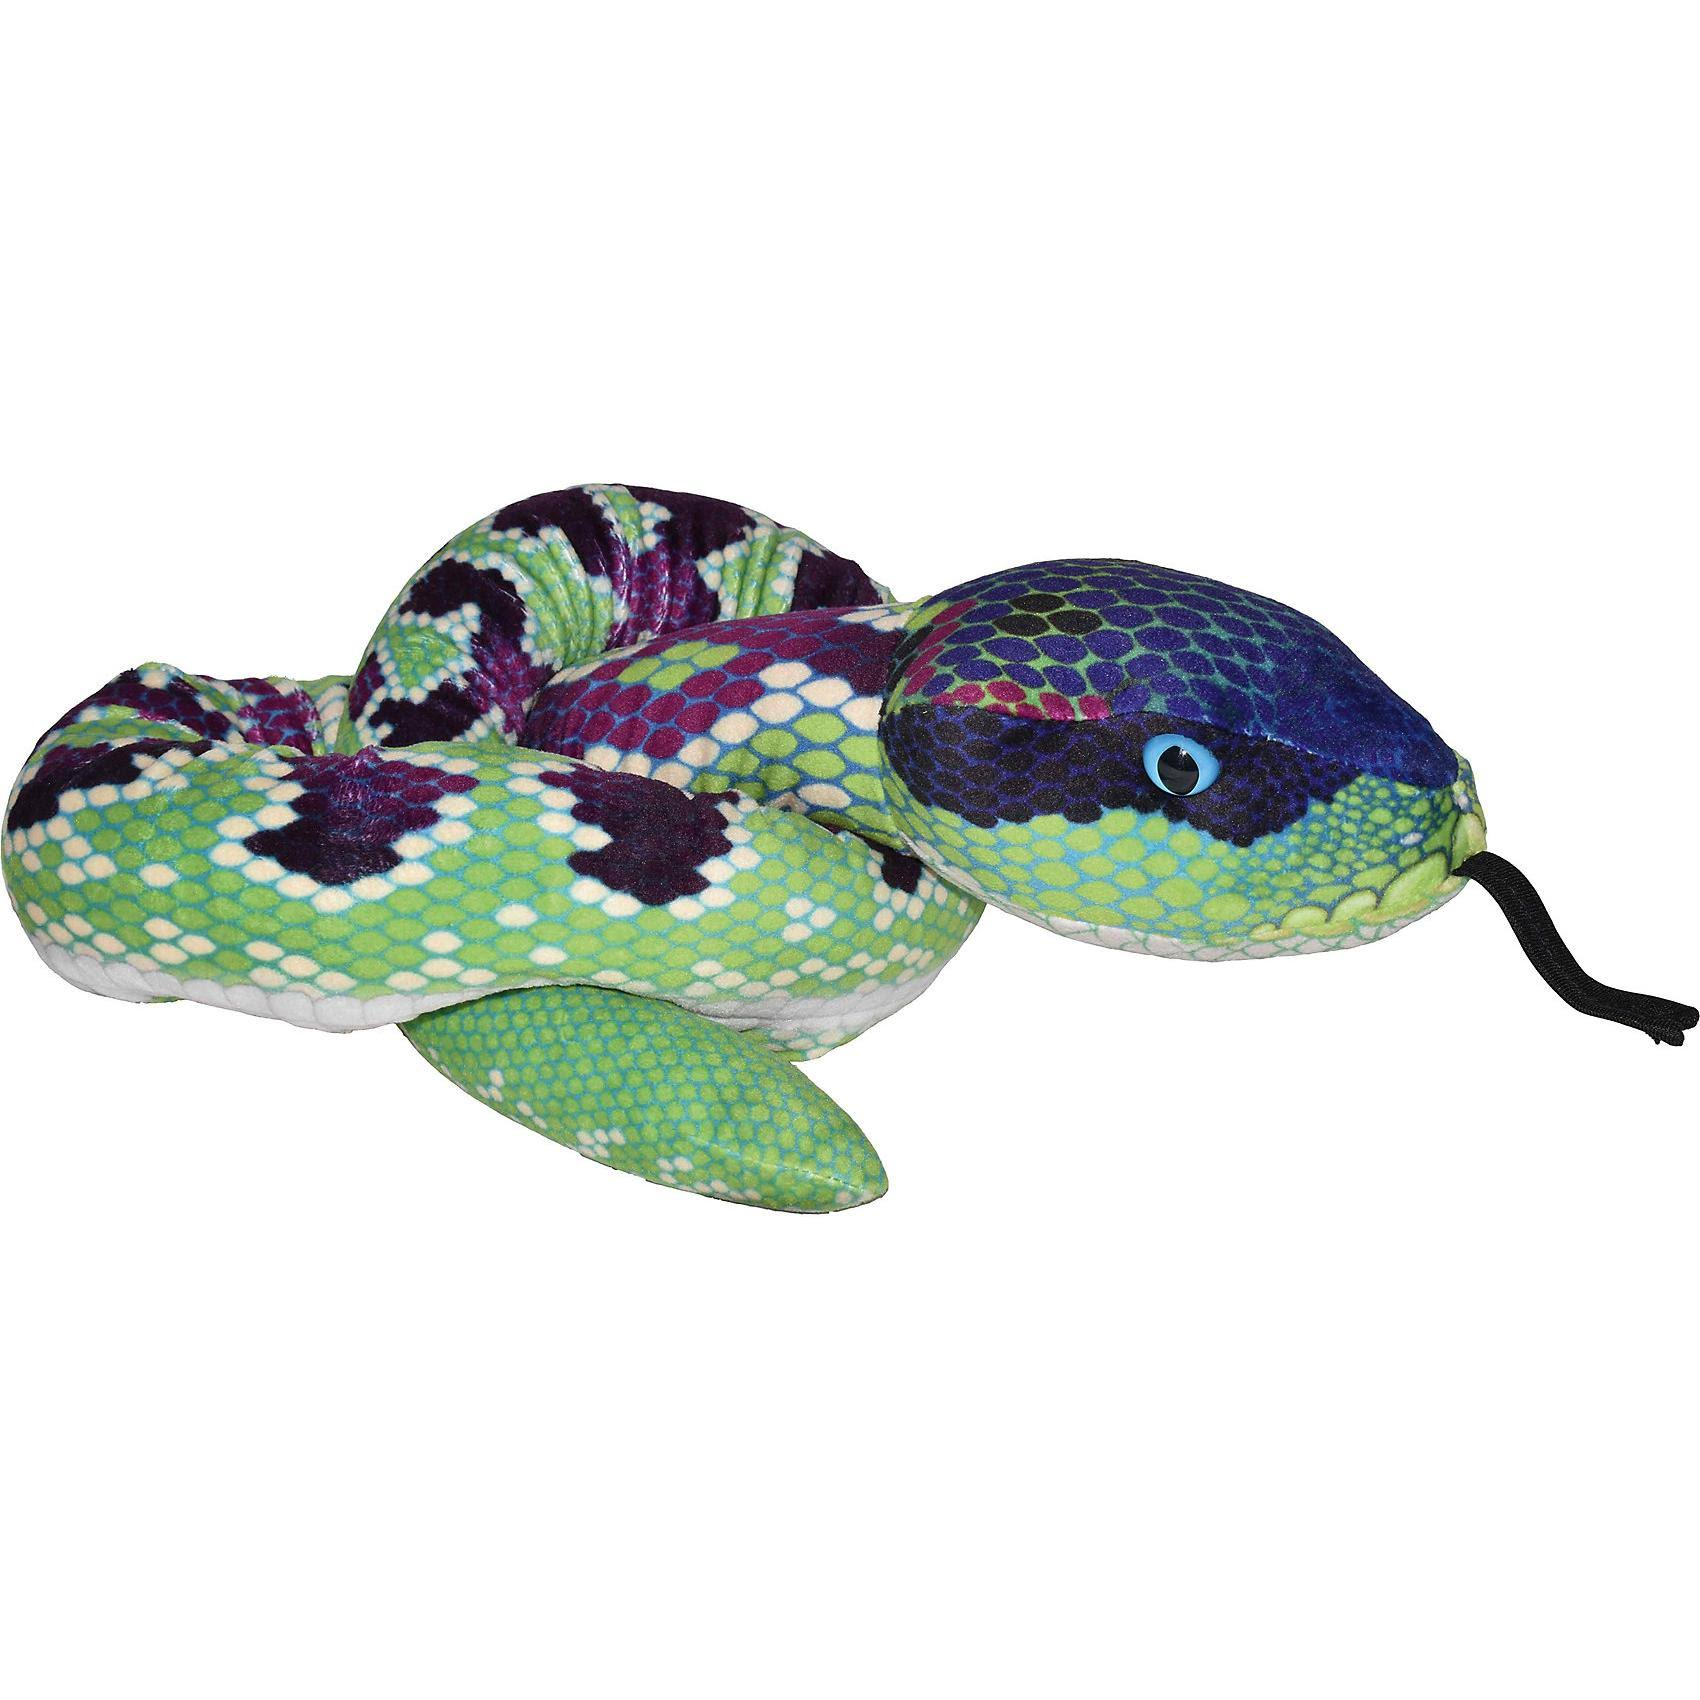 Purple Scale Print 54 inch Plush Green Snake by Wild Republic